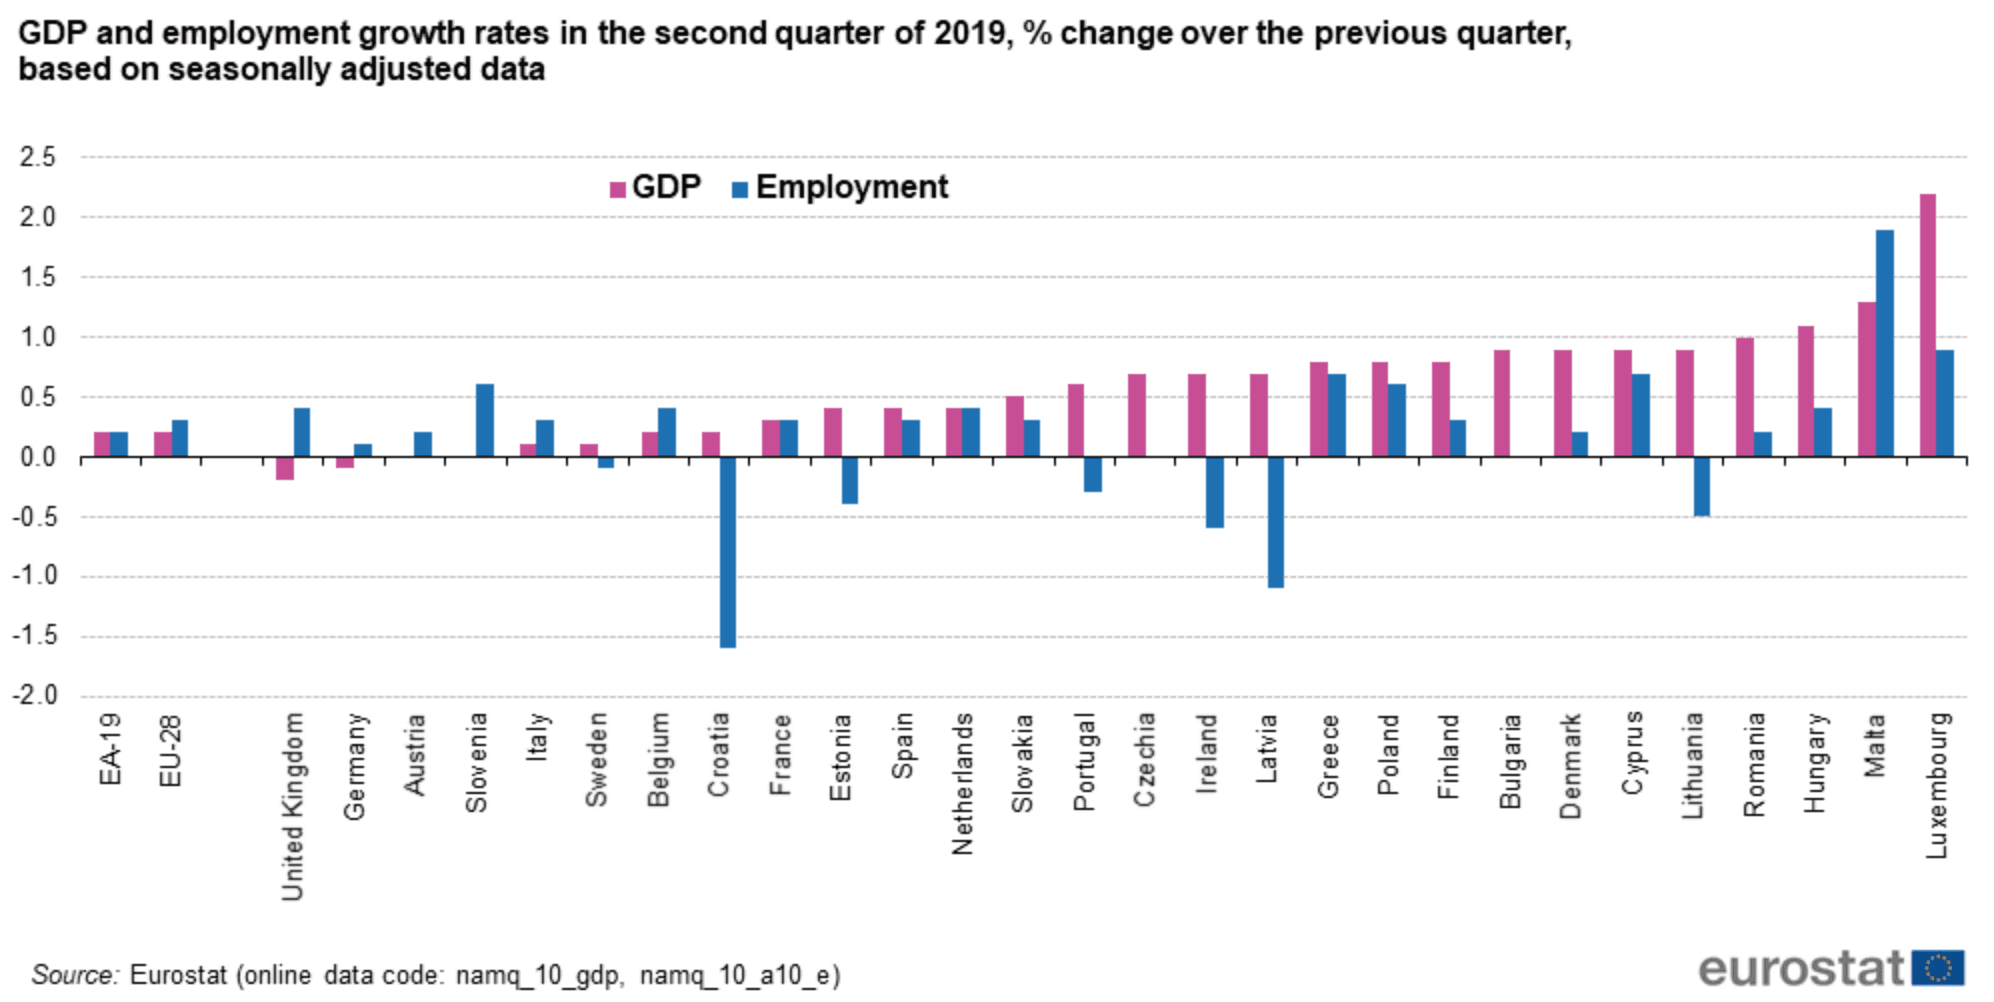 https://ec.europa.eu/eurostat/statistics-explained/index.php?title=Quarterly_national_accounts_-_GDP_and_employment&oldid=443269